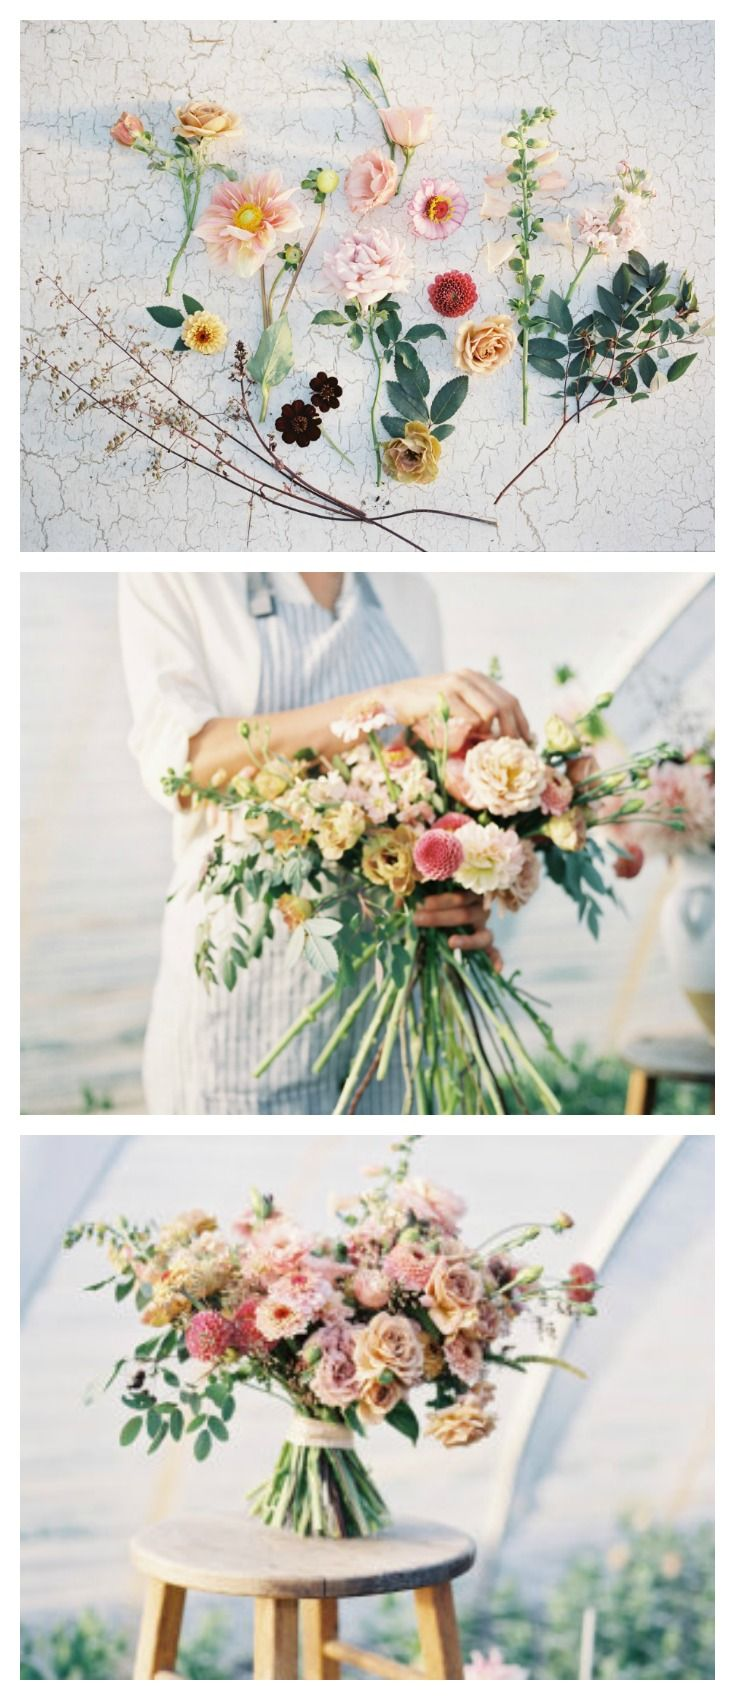 Erin Benzakein from Floret demonstrates how to create a DIY hand-tied bouquet…